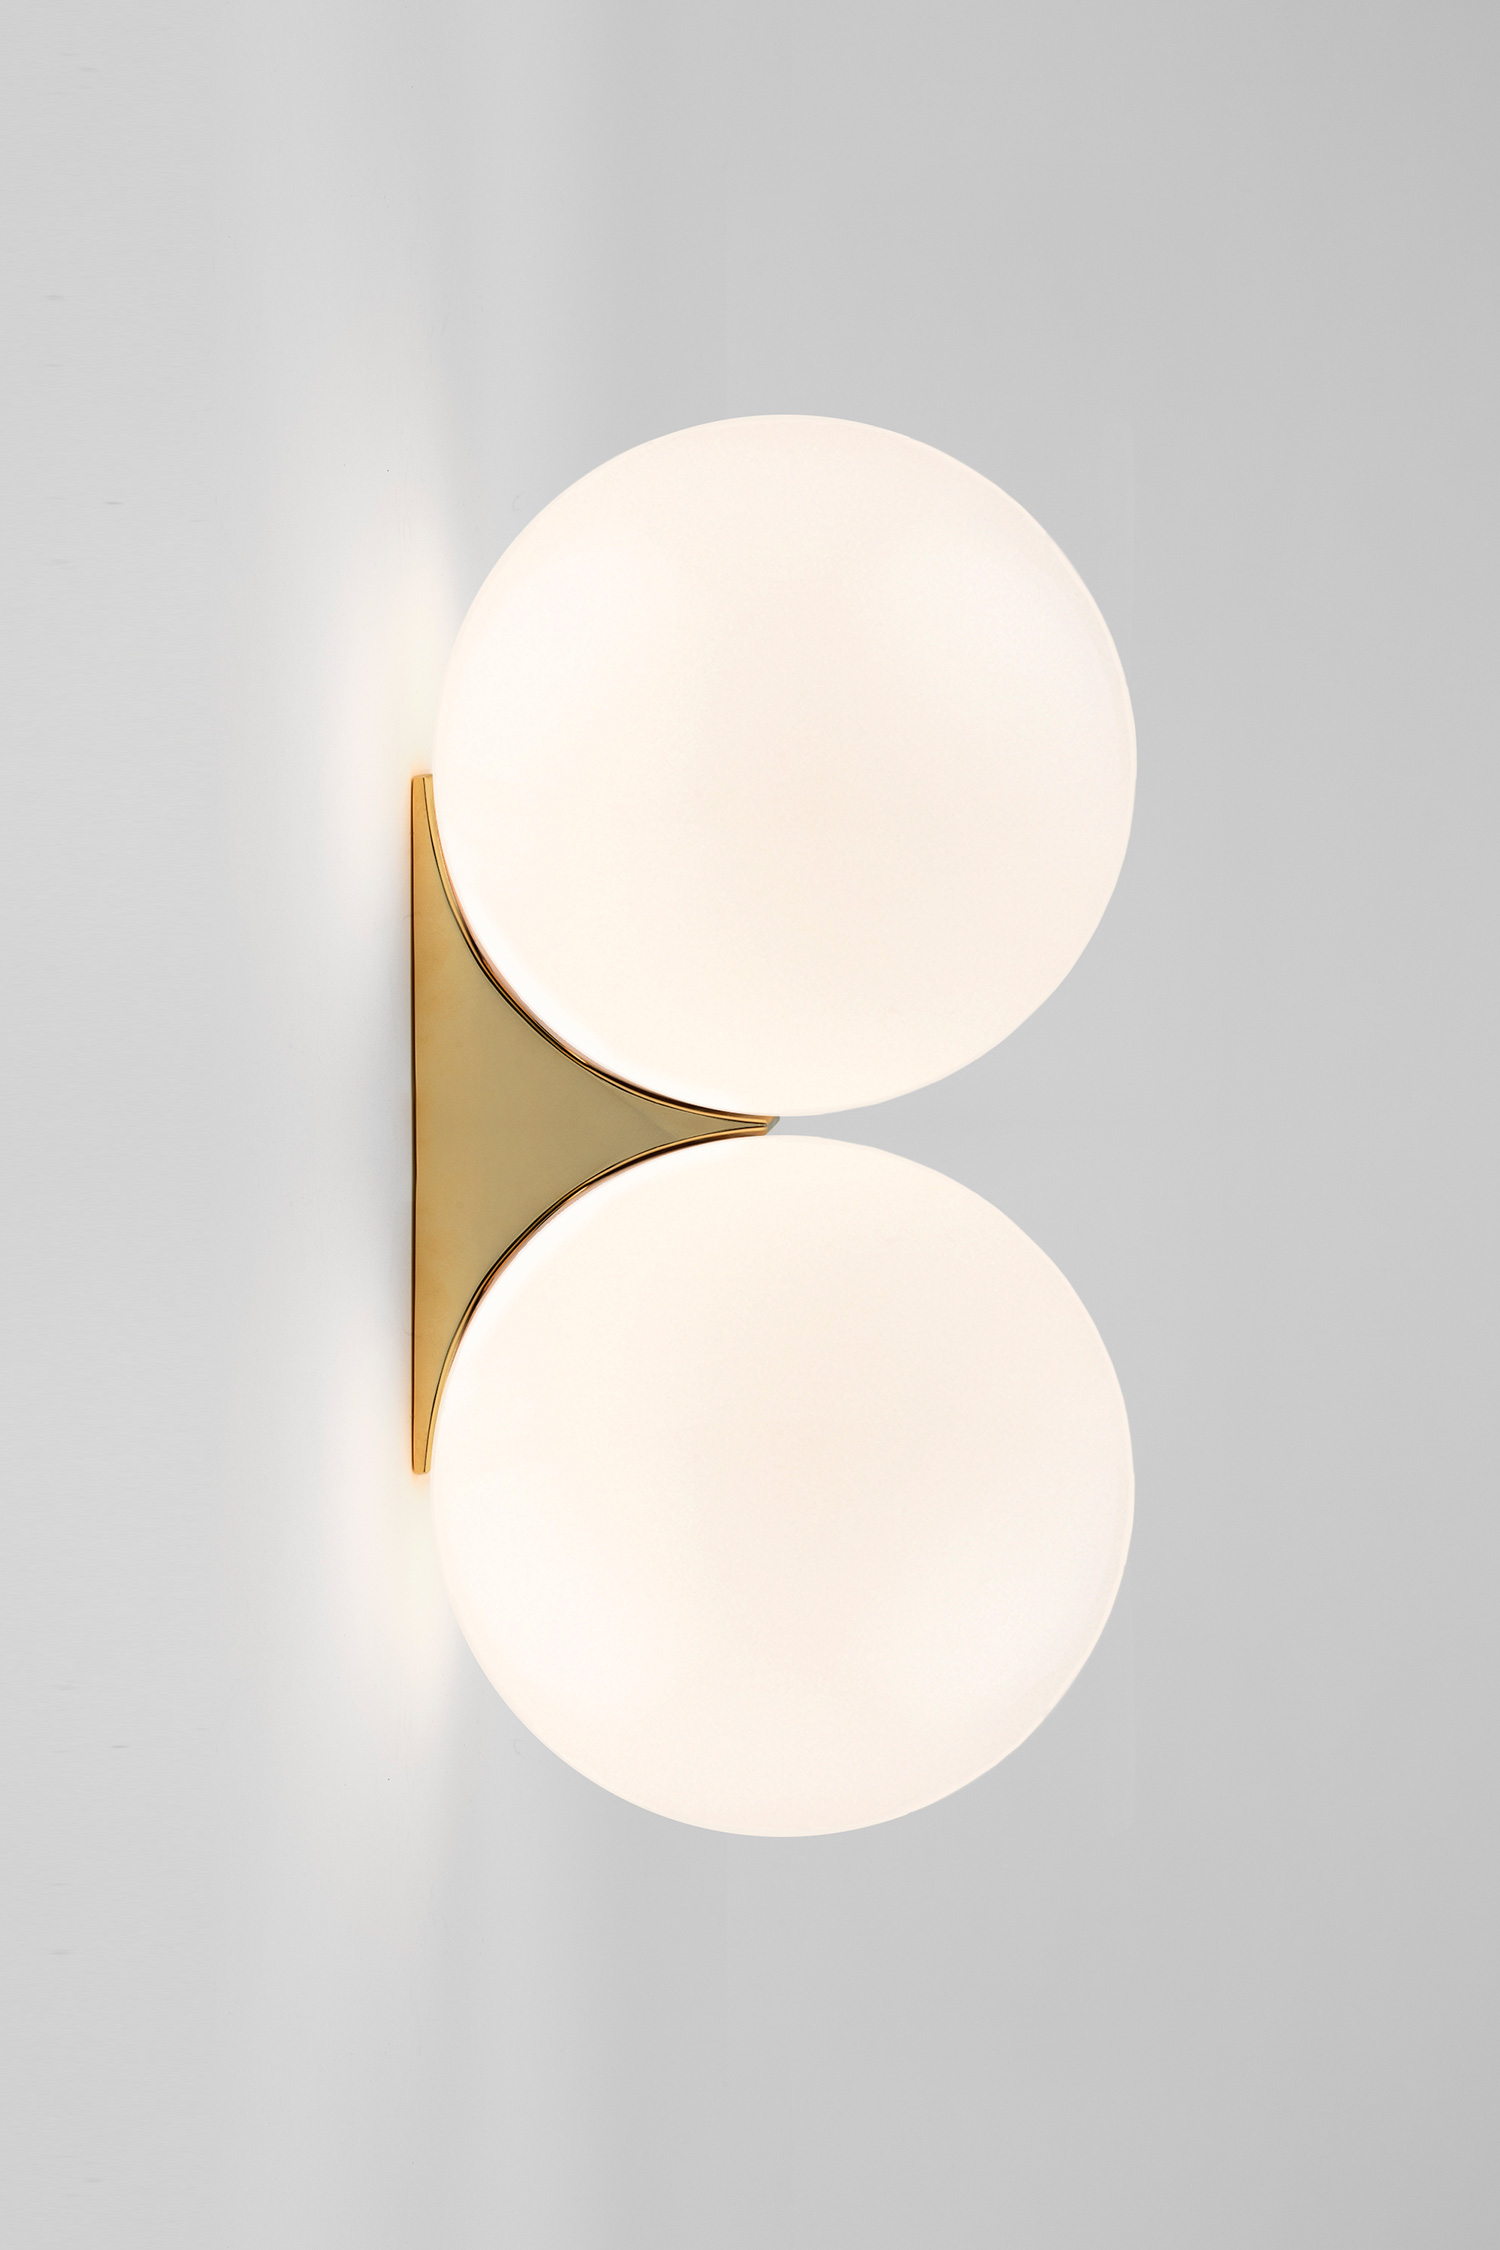 Brass Architectural Collection_Double Sconce brass by Michael Anastassiades at Euroluce 2017 | Yellowtrace